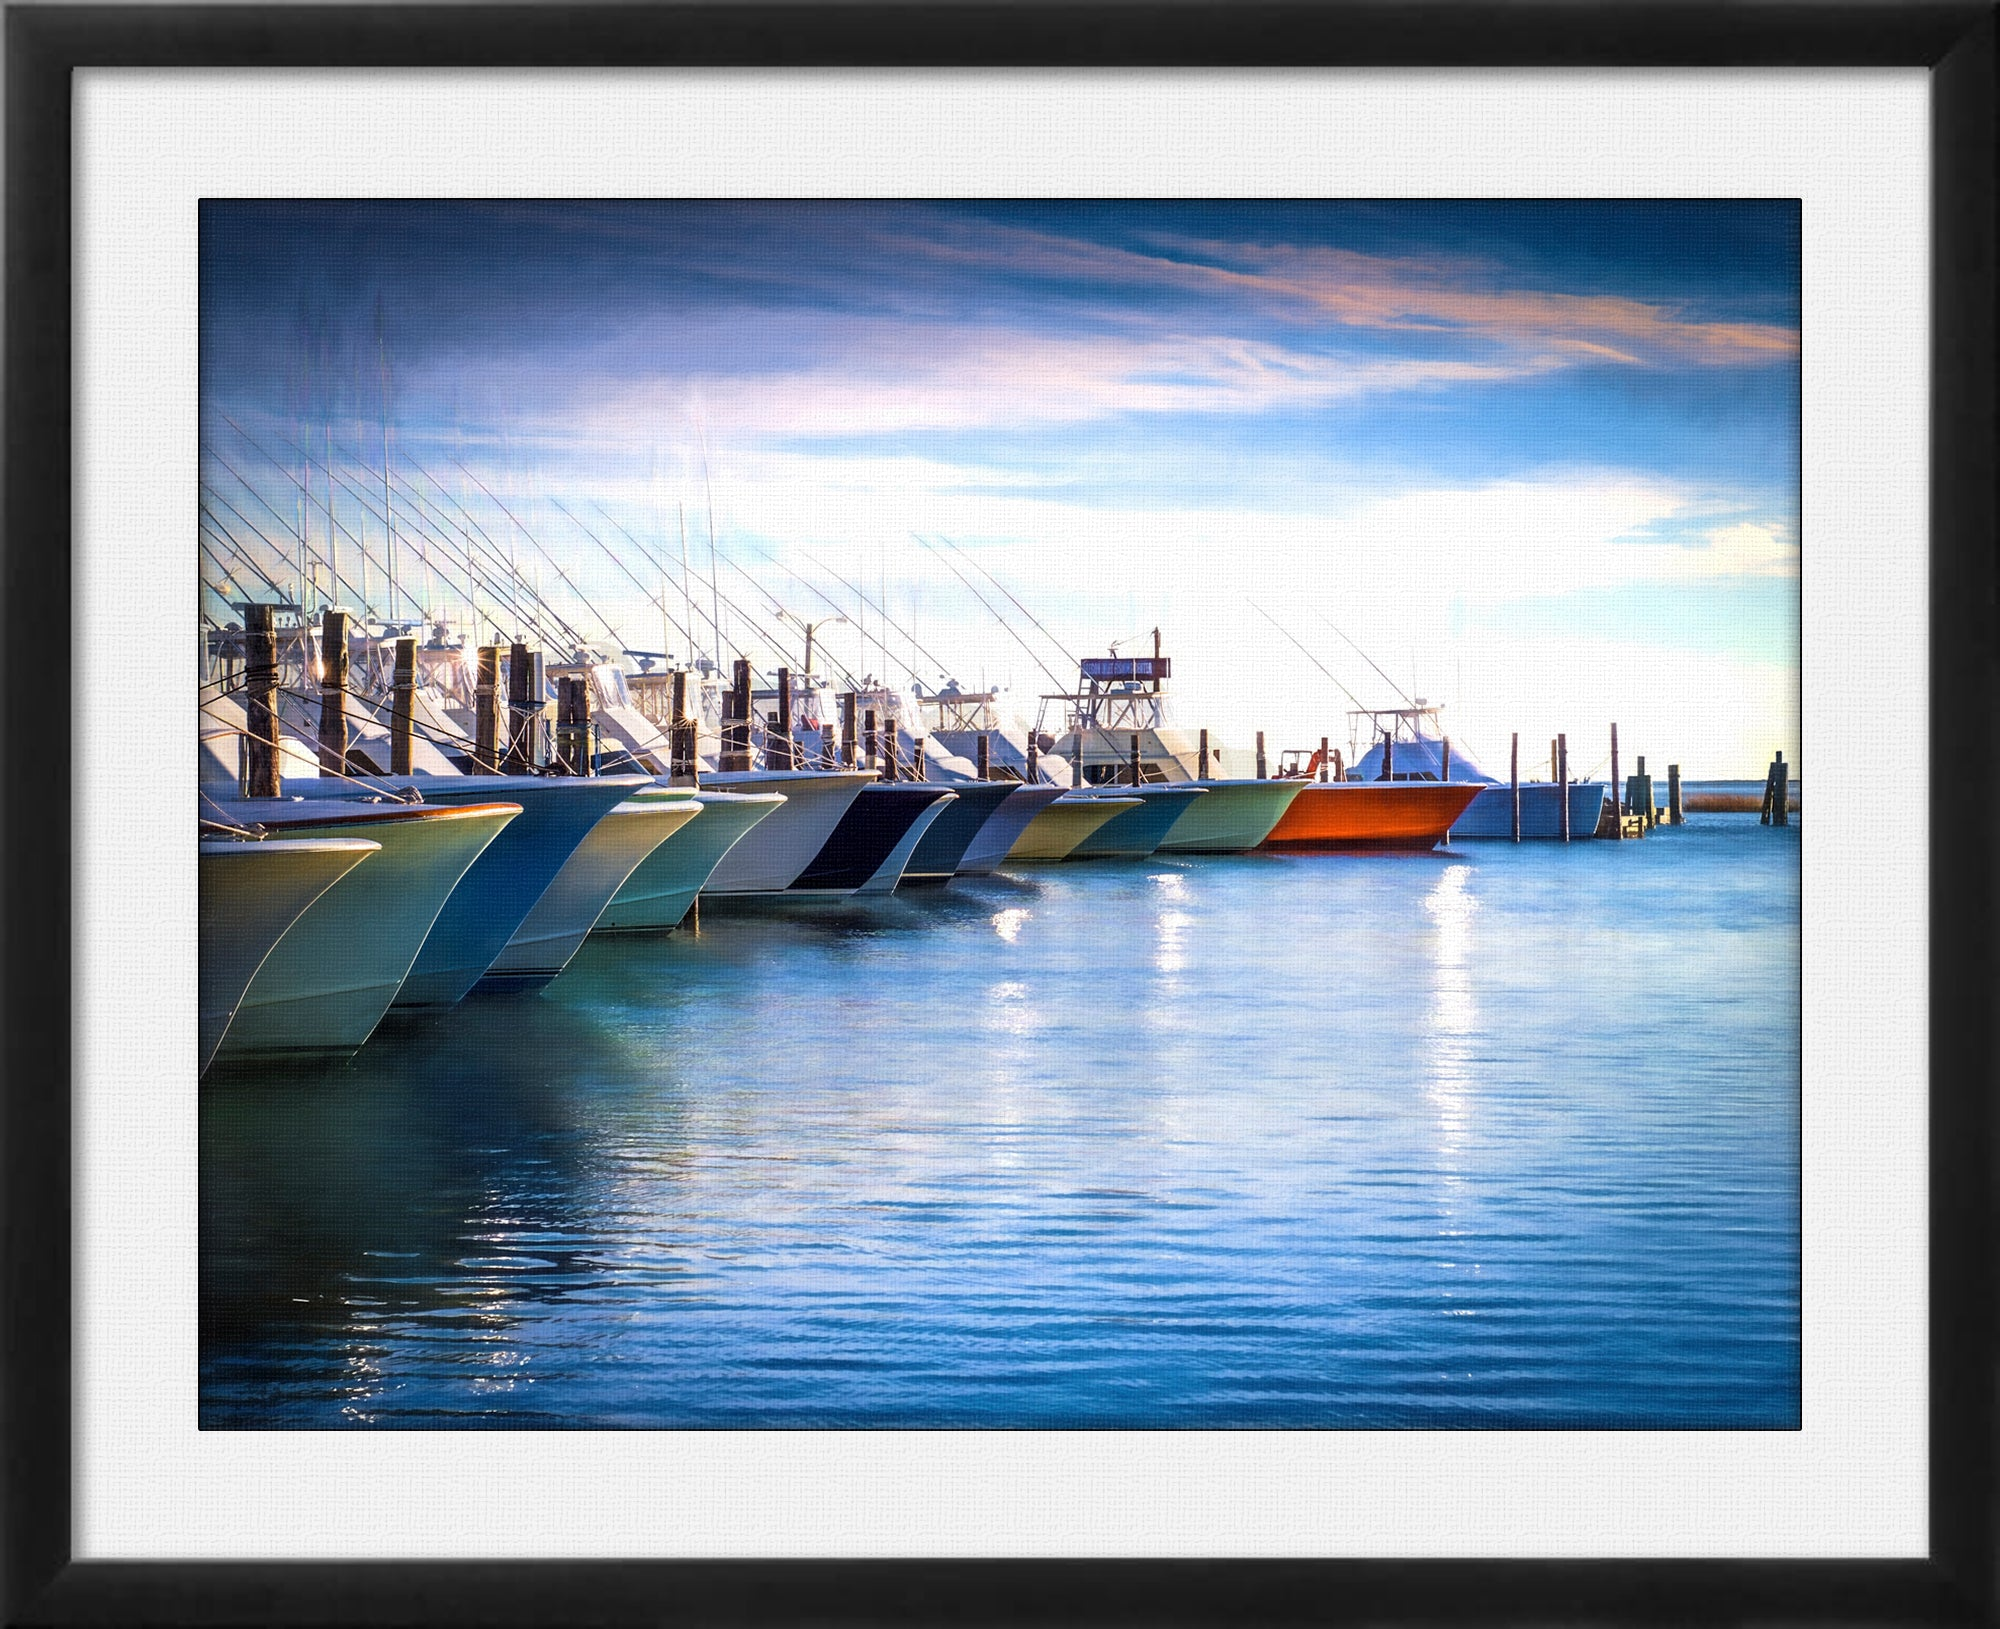 Fishing on the Atlantic - Framed Art